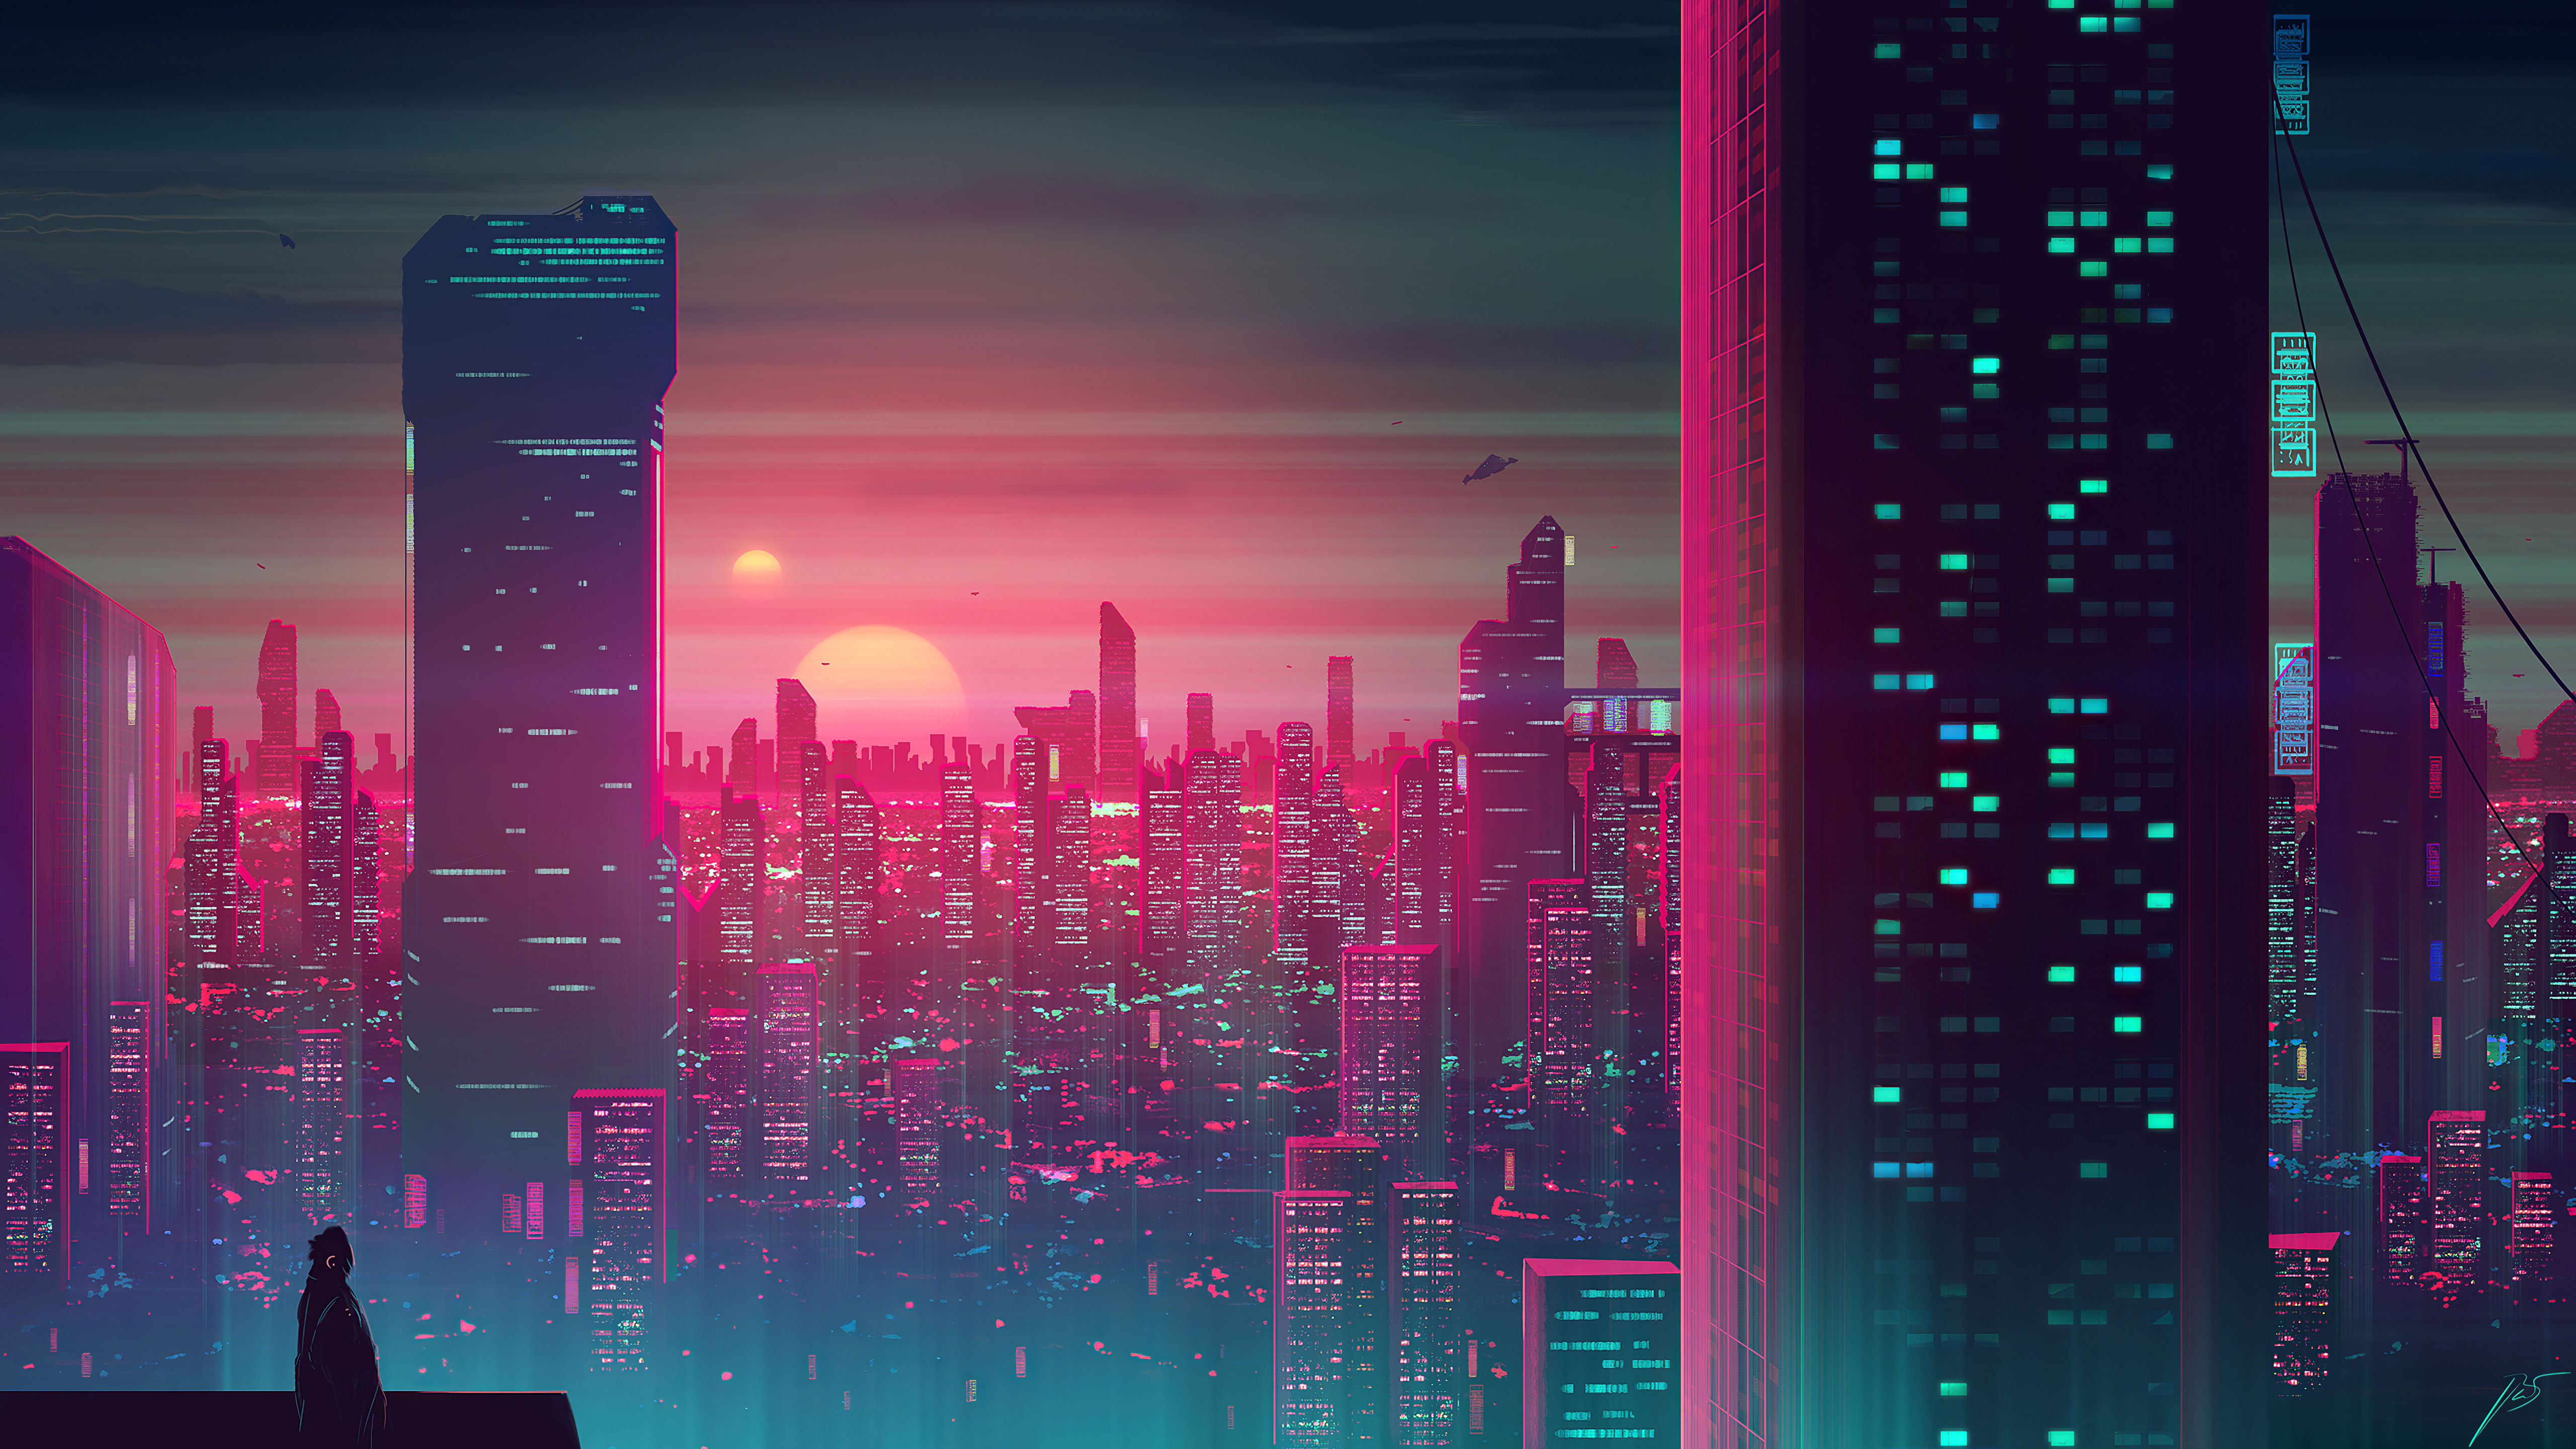 scifi-day-and-night-4k-yx.jpg